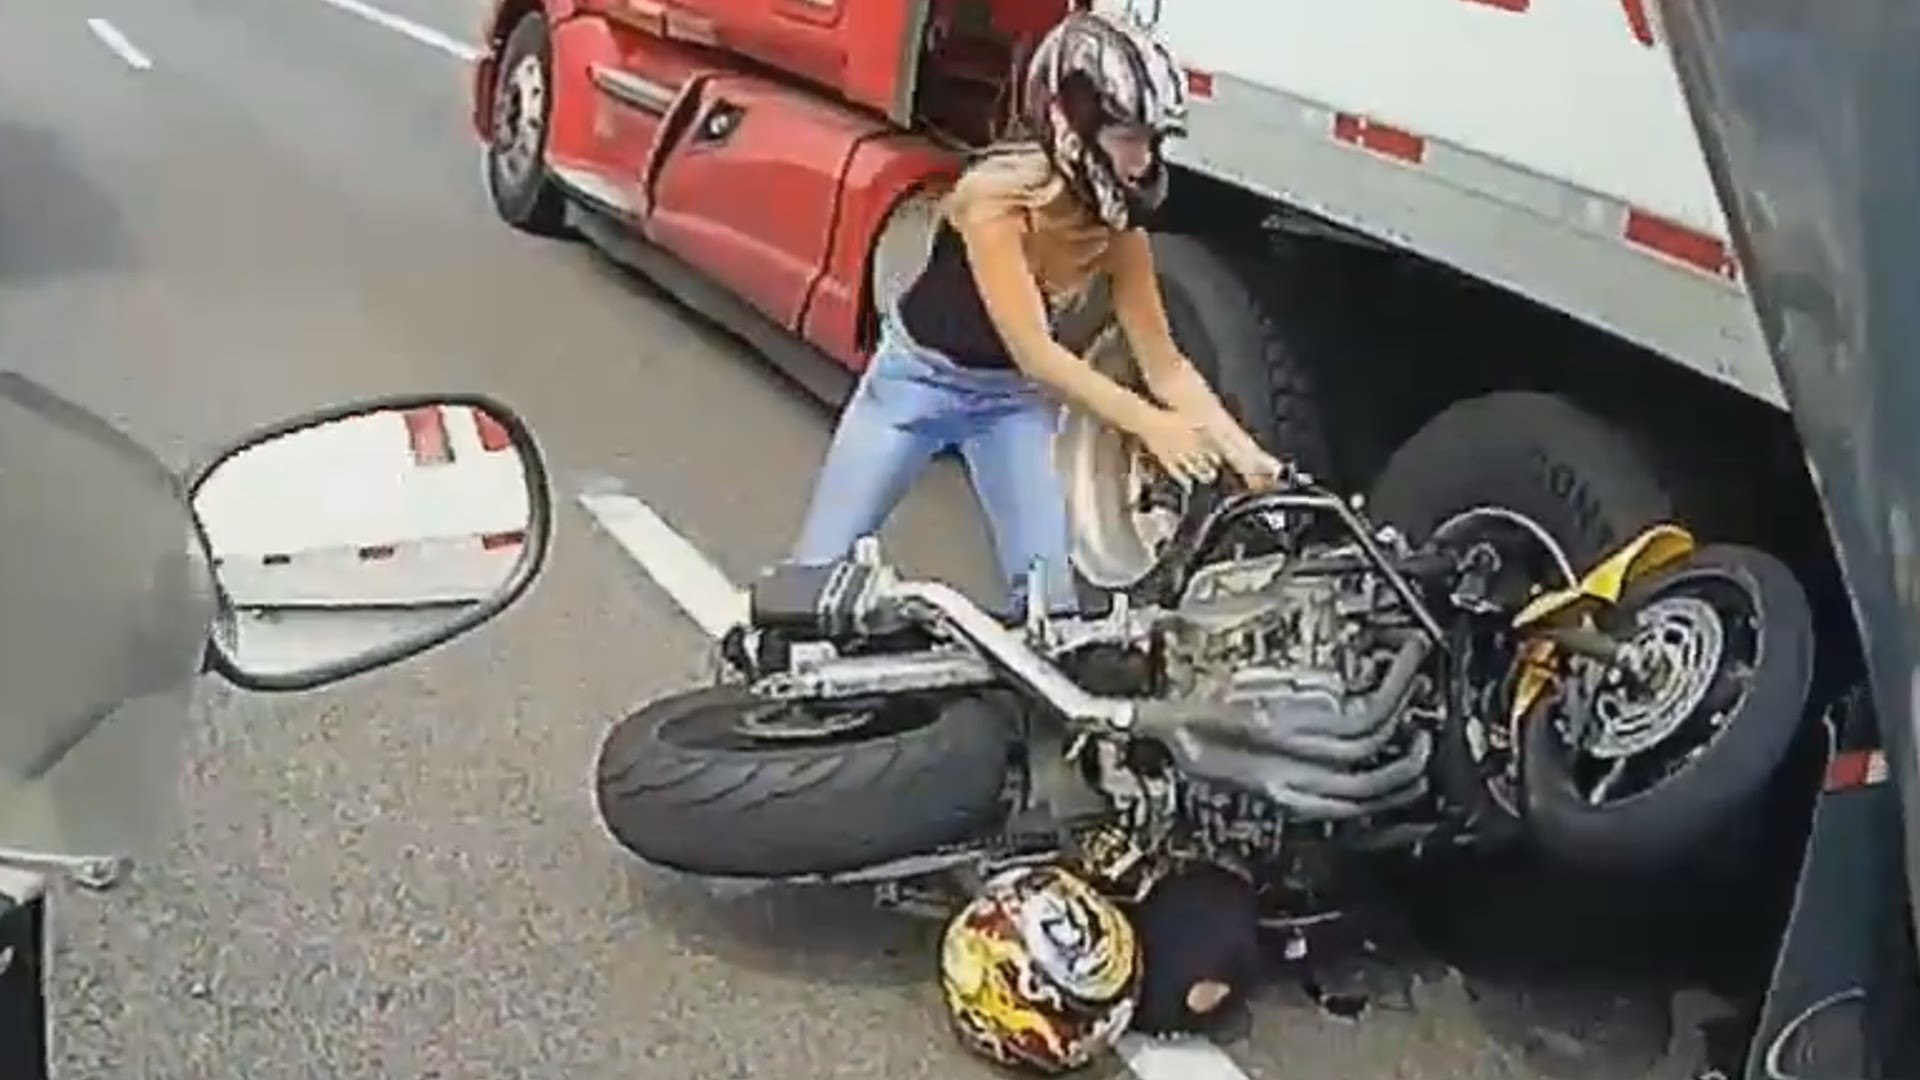 Stunningly Violent Motorcycle And Semi Truck Crash At